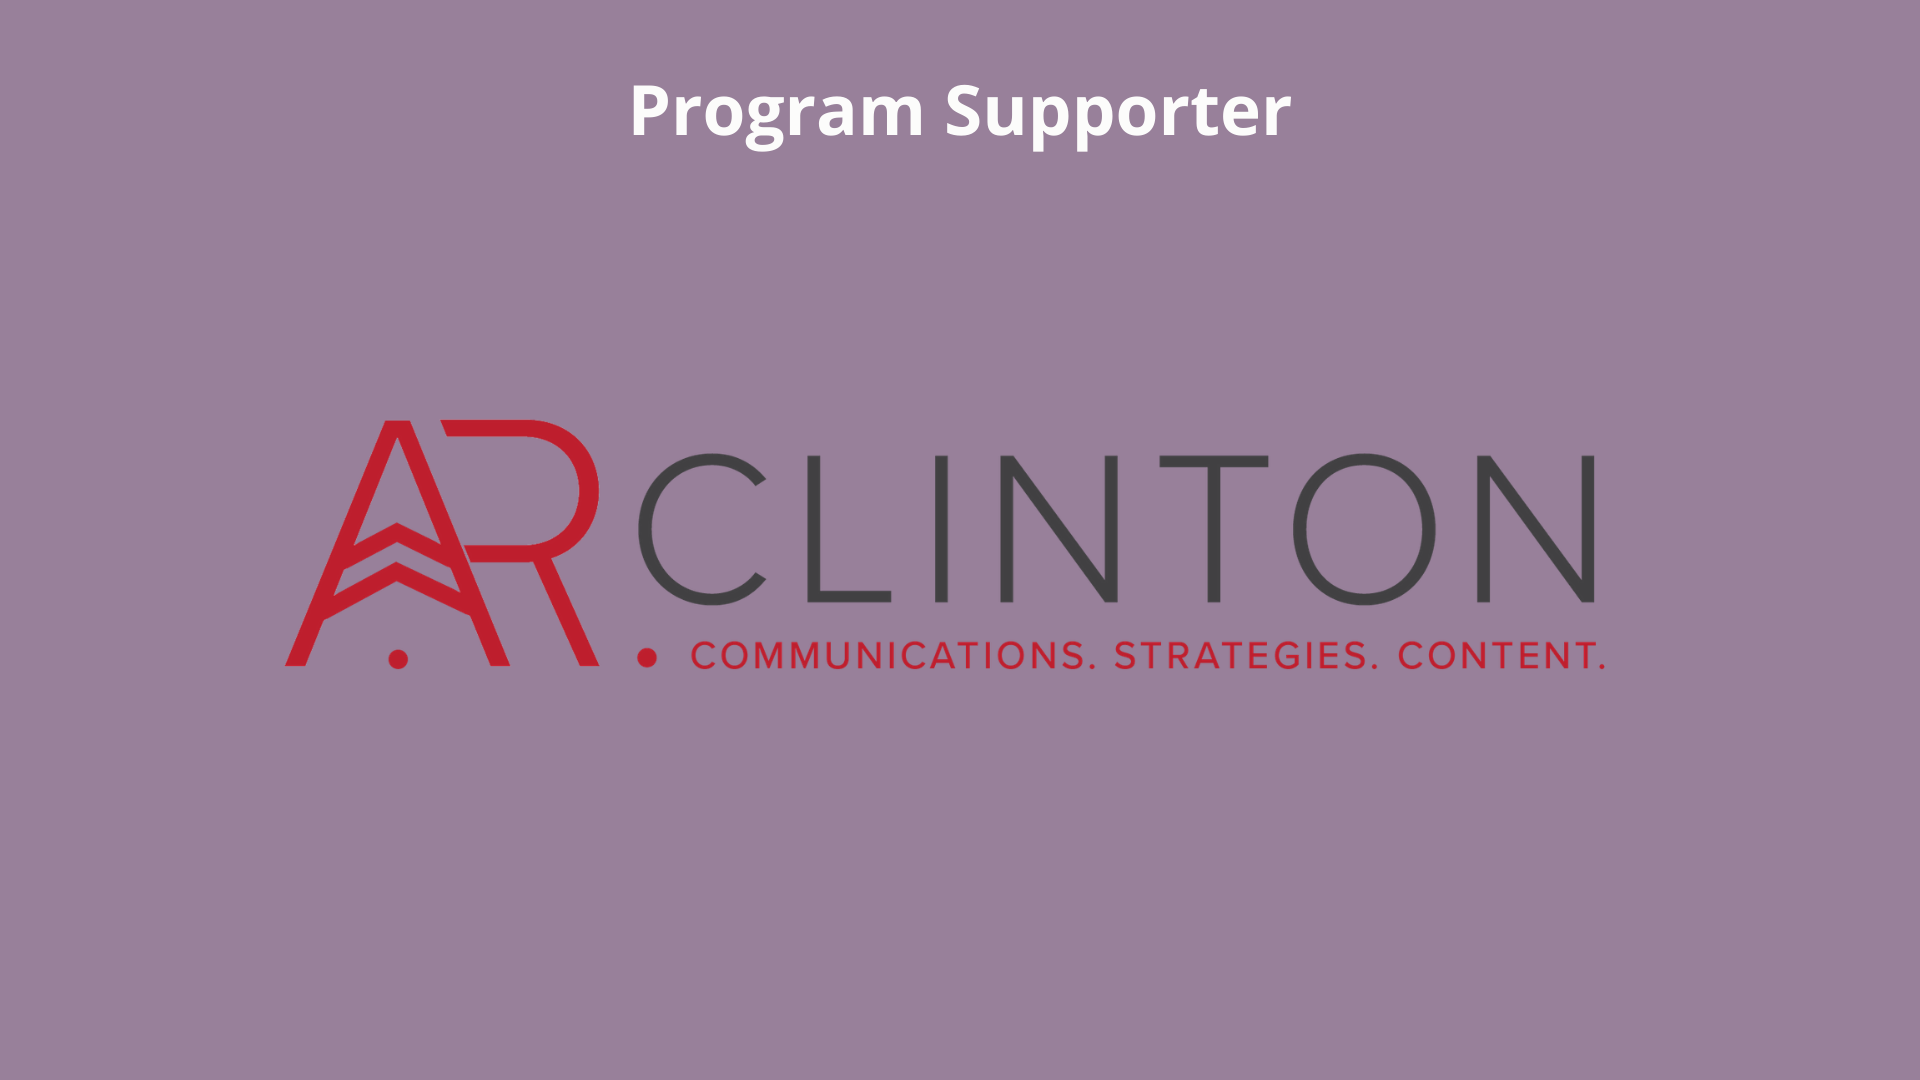 A.R. Clinton: Communication. Strategy. Content.